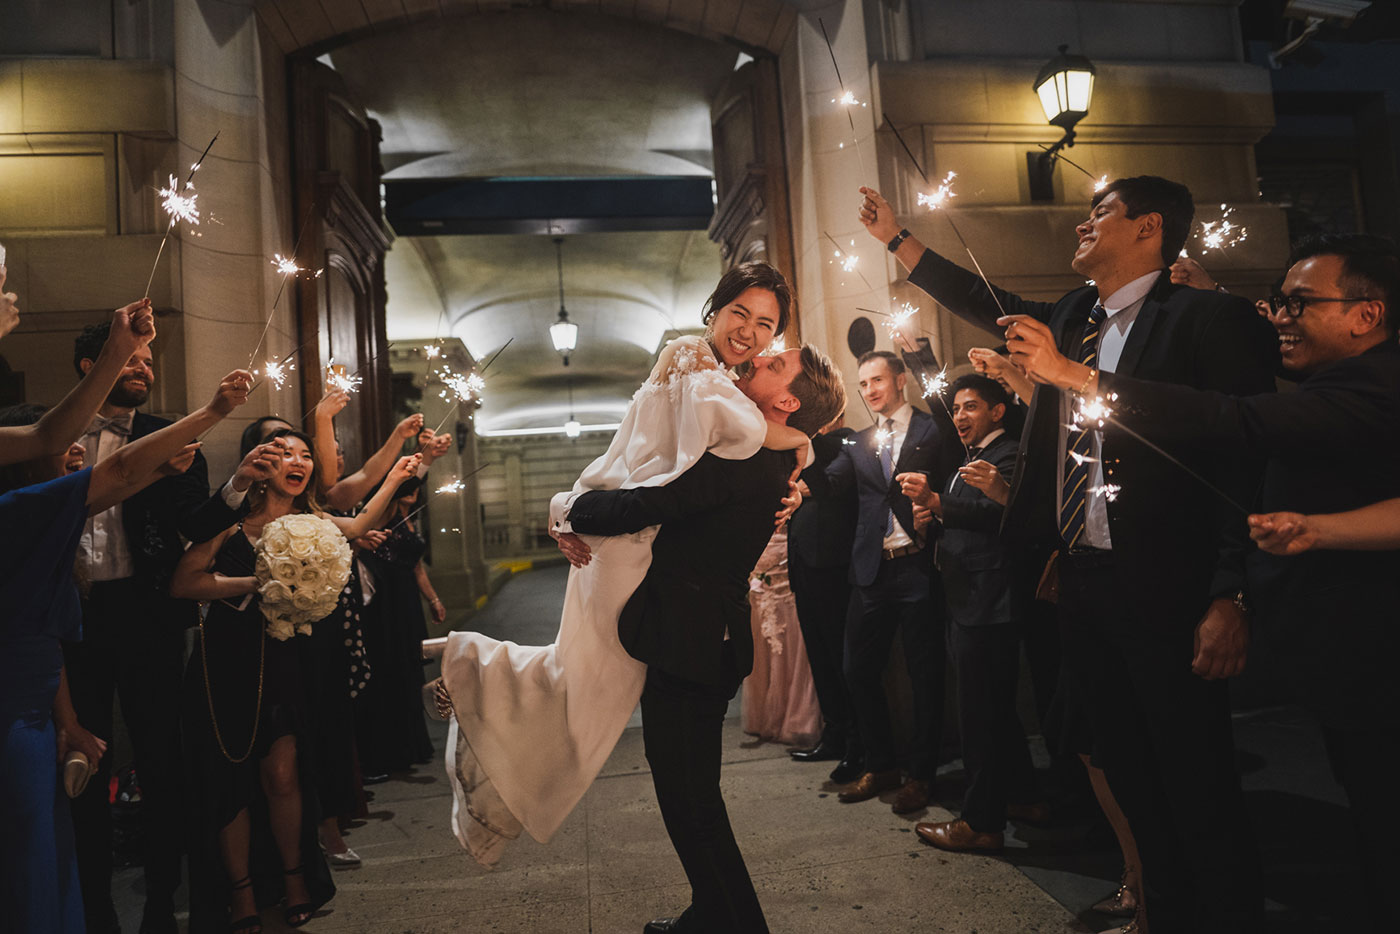 sparkler exit at wedding at the James Burden Kahn Mansion by Weddings by Hanel